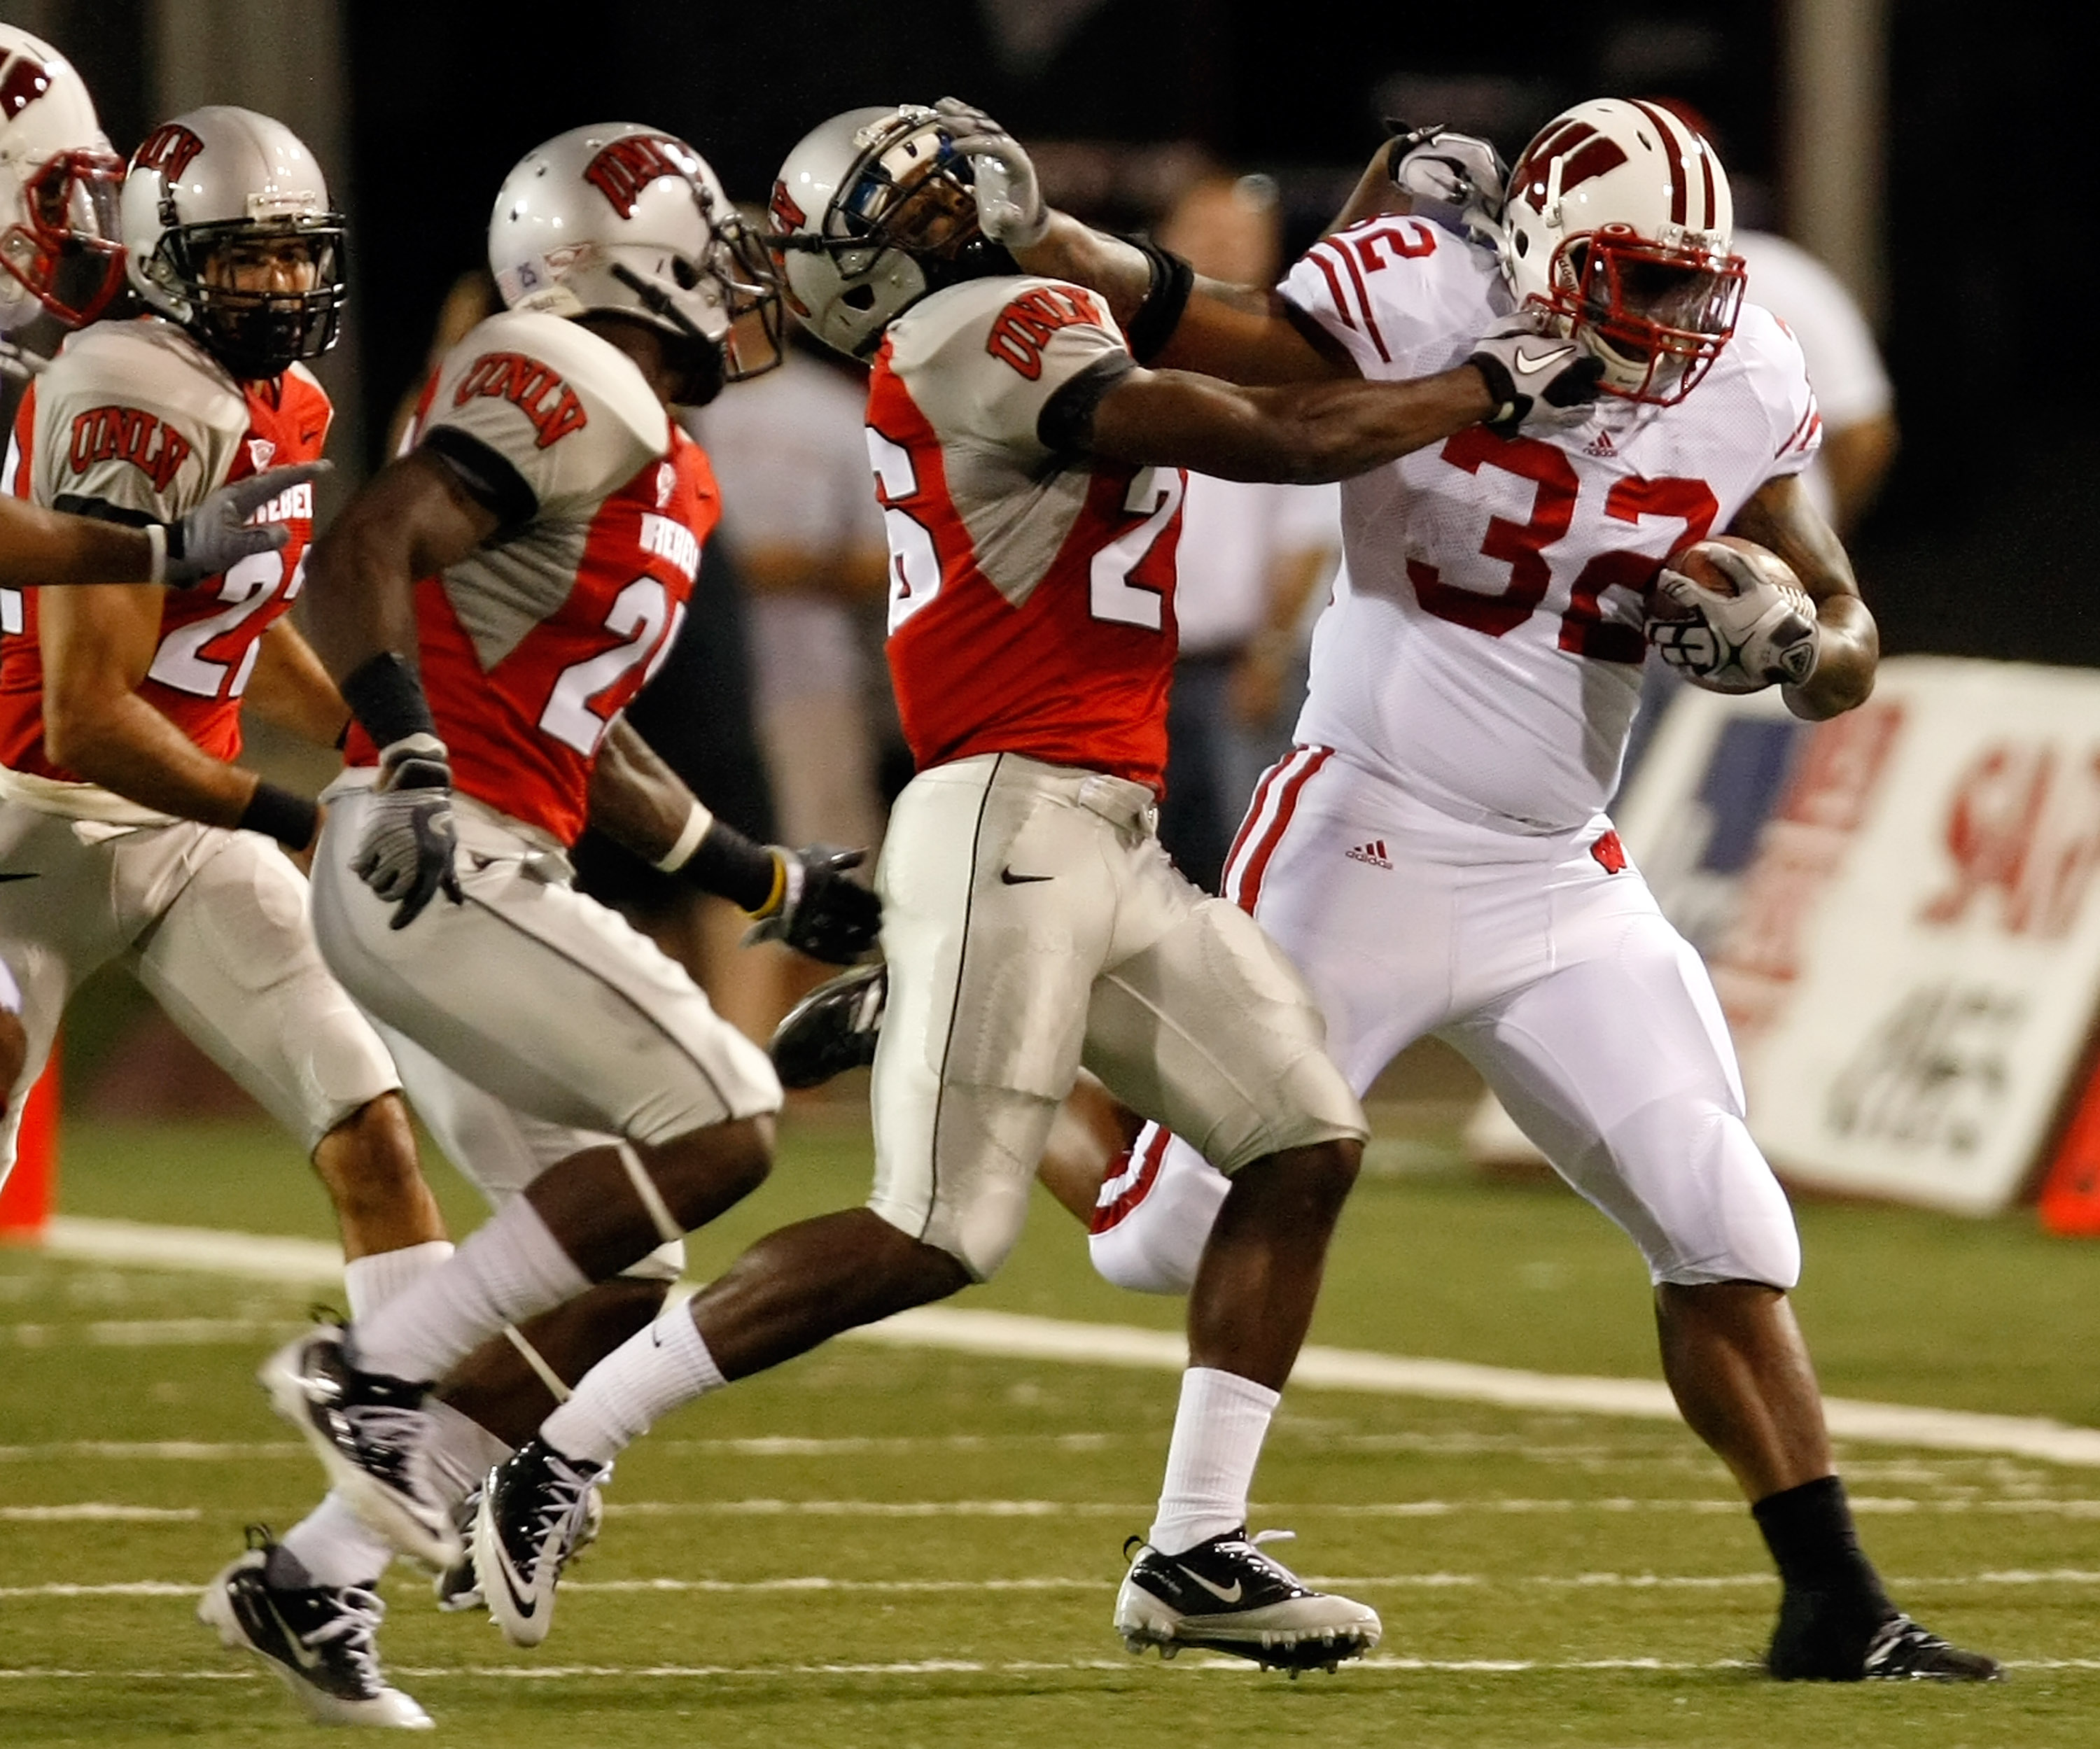 LAS VEGAS - SEPTEMBER 04:  John Clay #32 of the Wisconsin Badgers tries to get away from Deante' Purvis #26 of the UNLV Rebels during the first quarter of their game at Sam Boyd Stadium September 4, 2010 in Las Vegas, Nevada.  (Photo by Ethan Miller/Getty